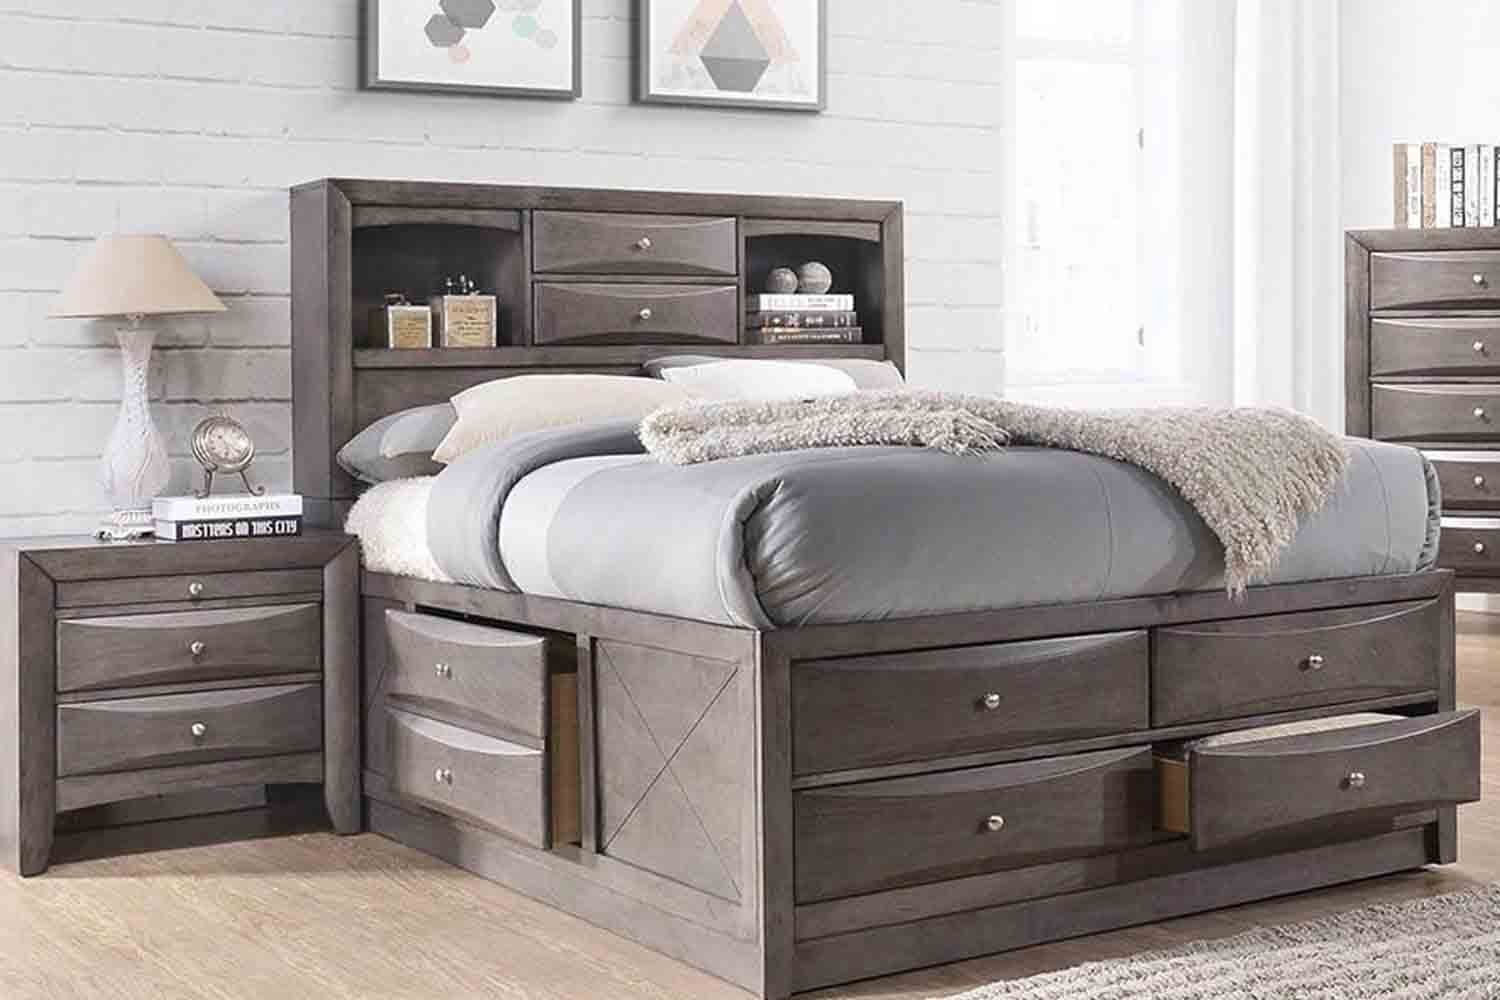 Remi Full Storage Bed Mor Furniture For Less